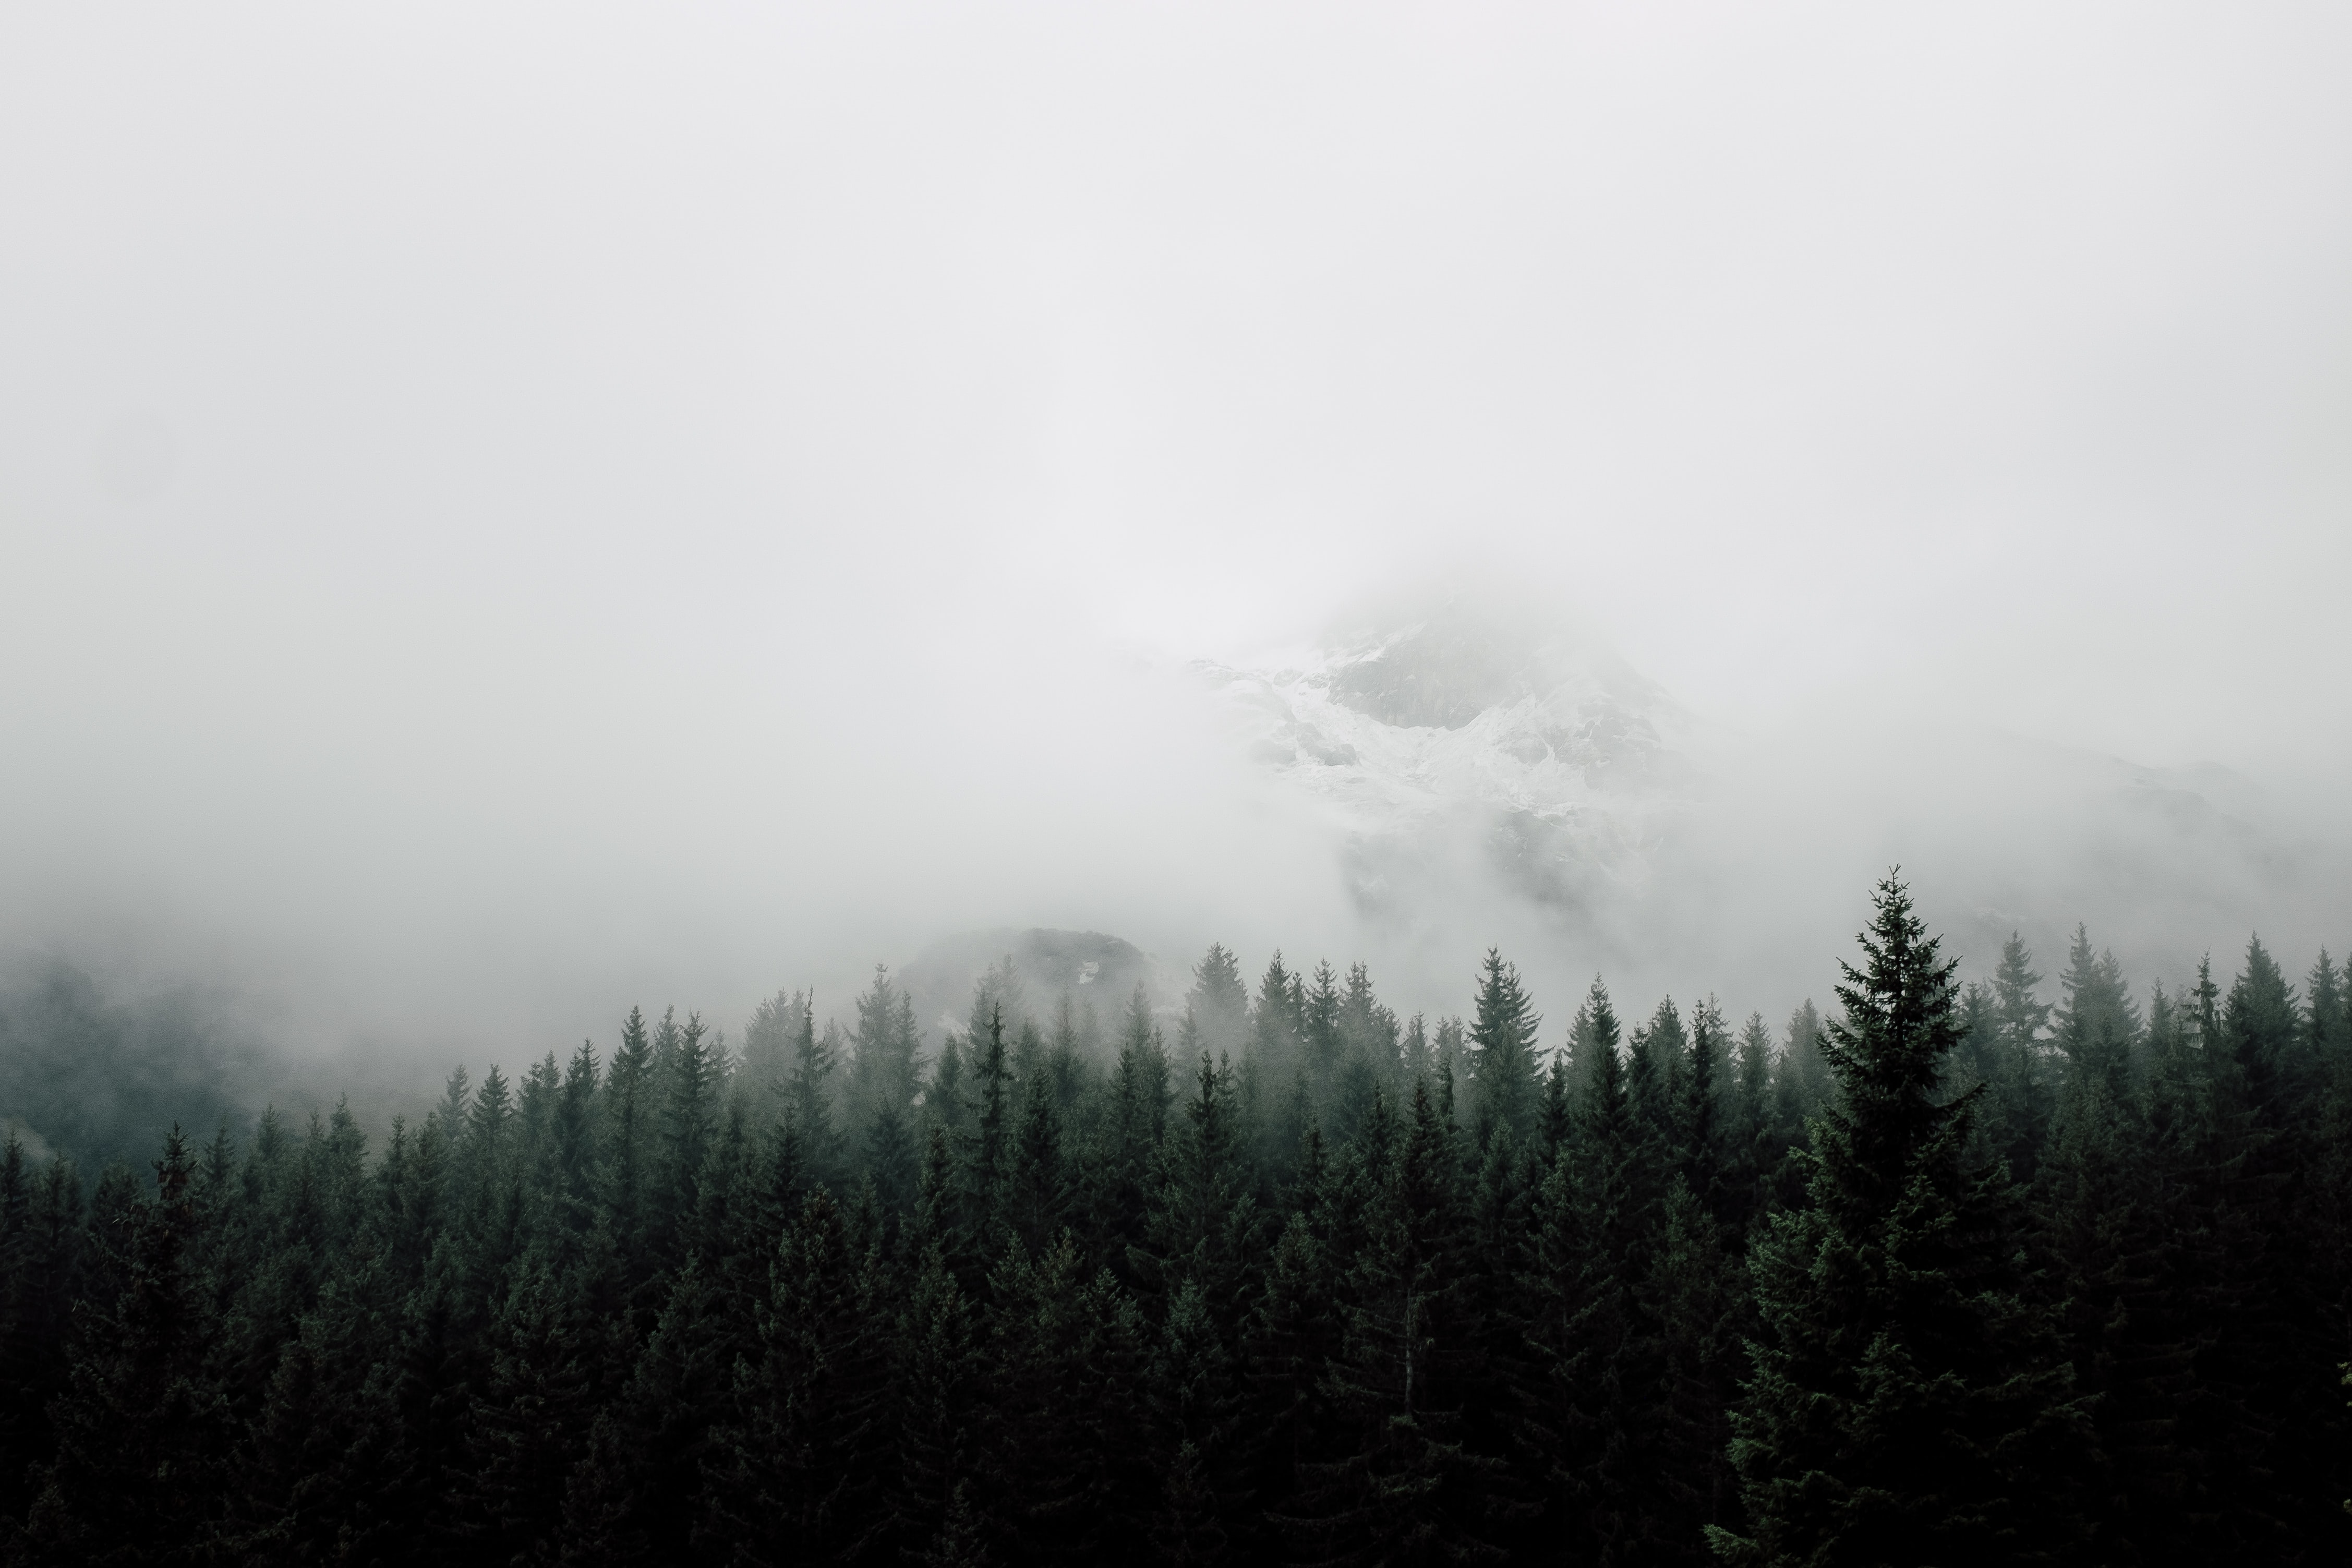 mist covering mountain and forest